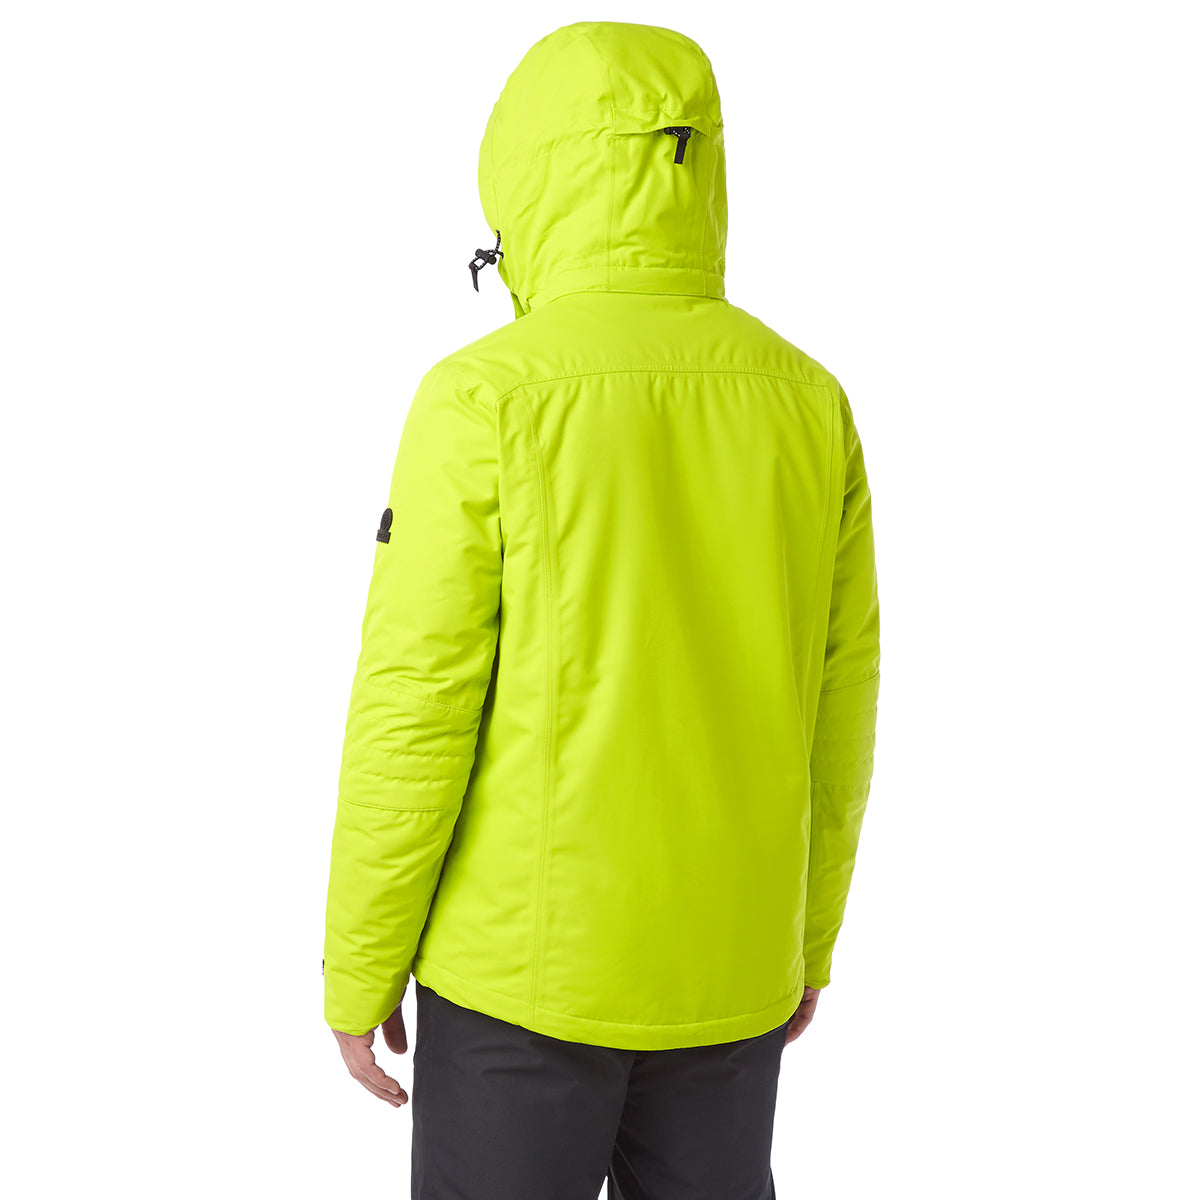 Sharp Mens Waterproof Insulated Ski Jacket - Bright Lime image 4